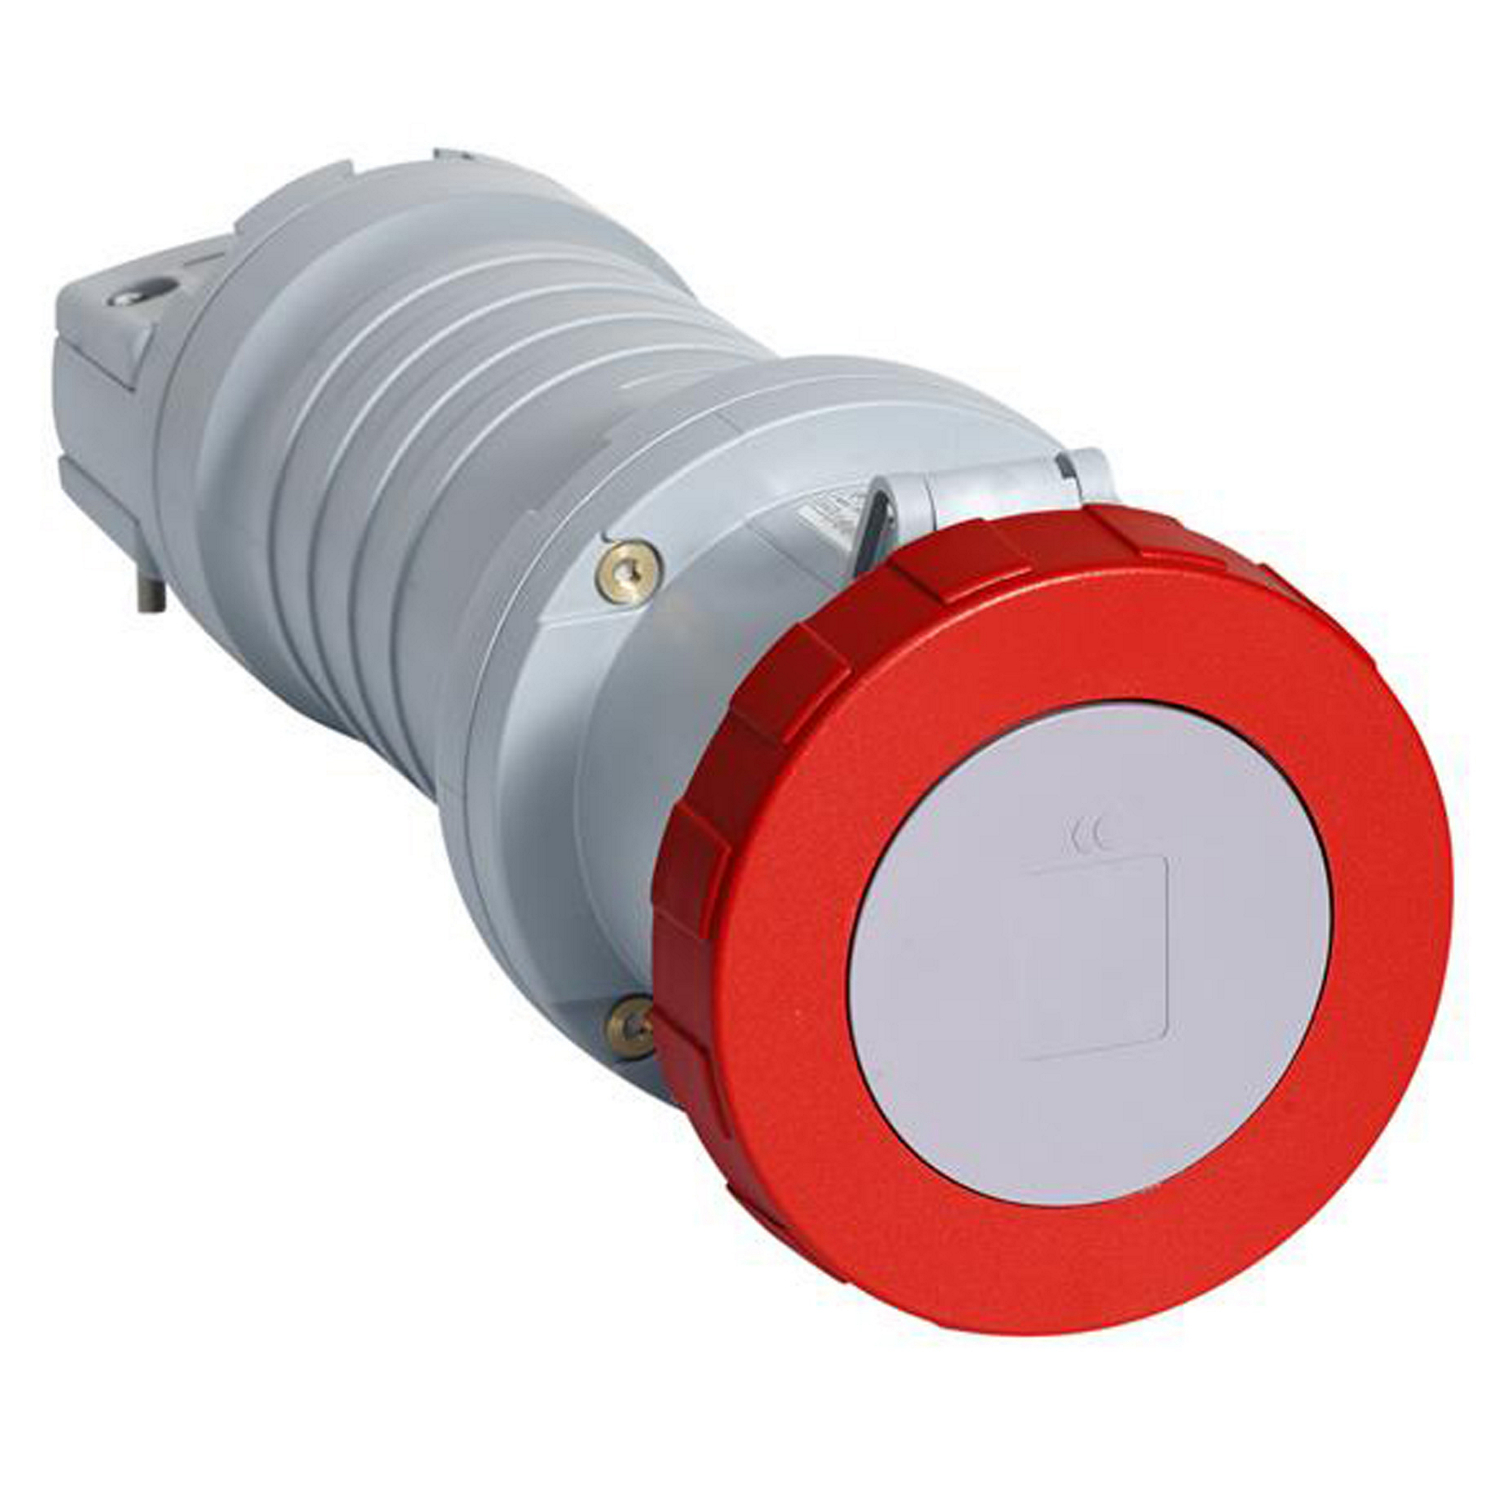 ABB ABB4100C7W Pin and Sleeve Connector